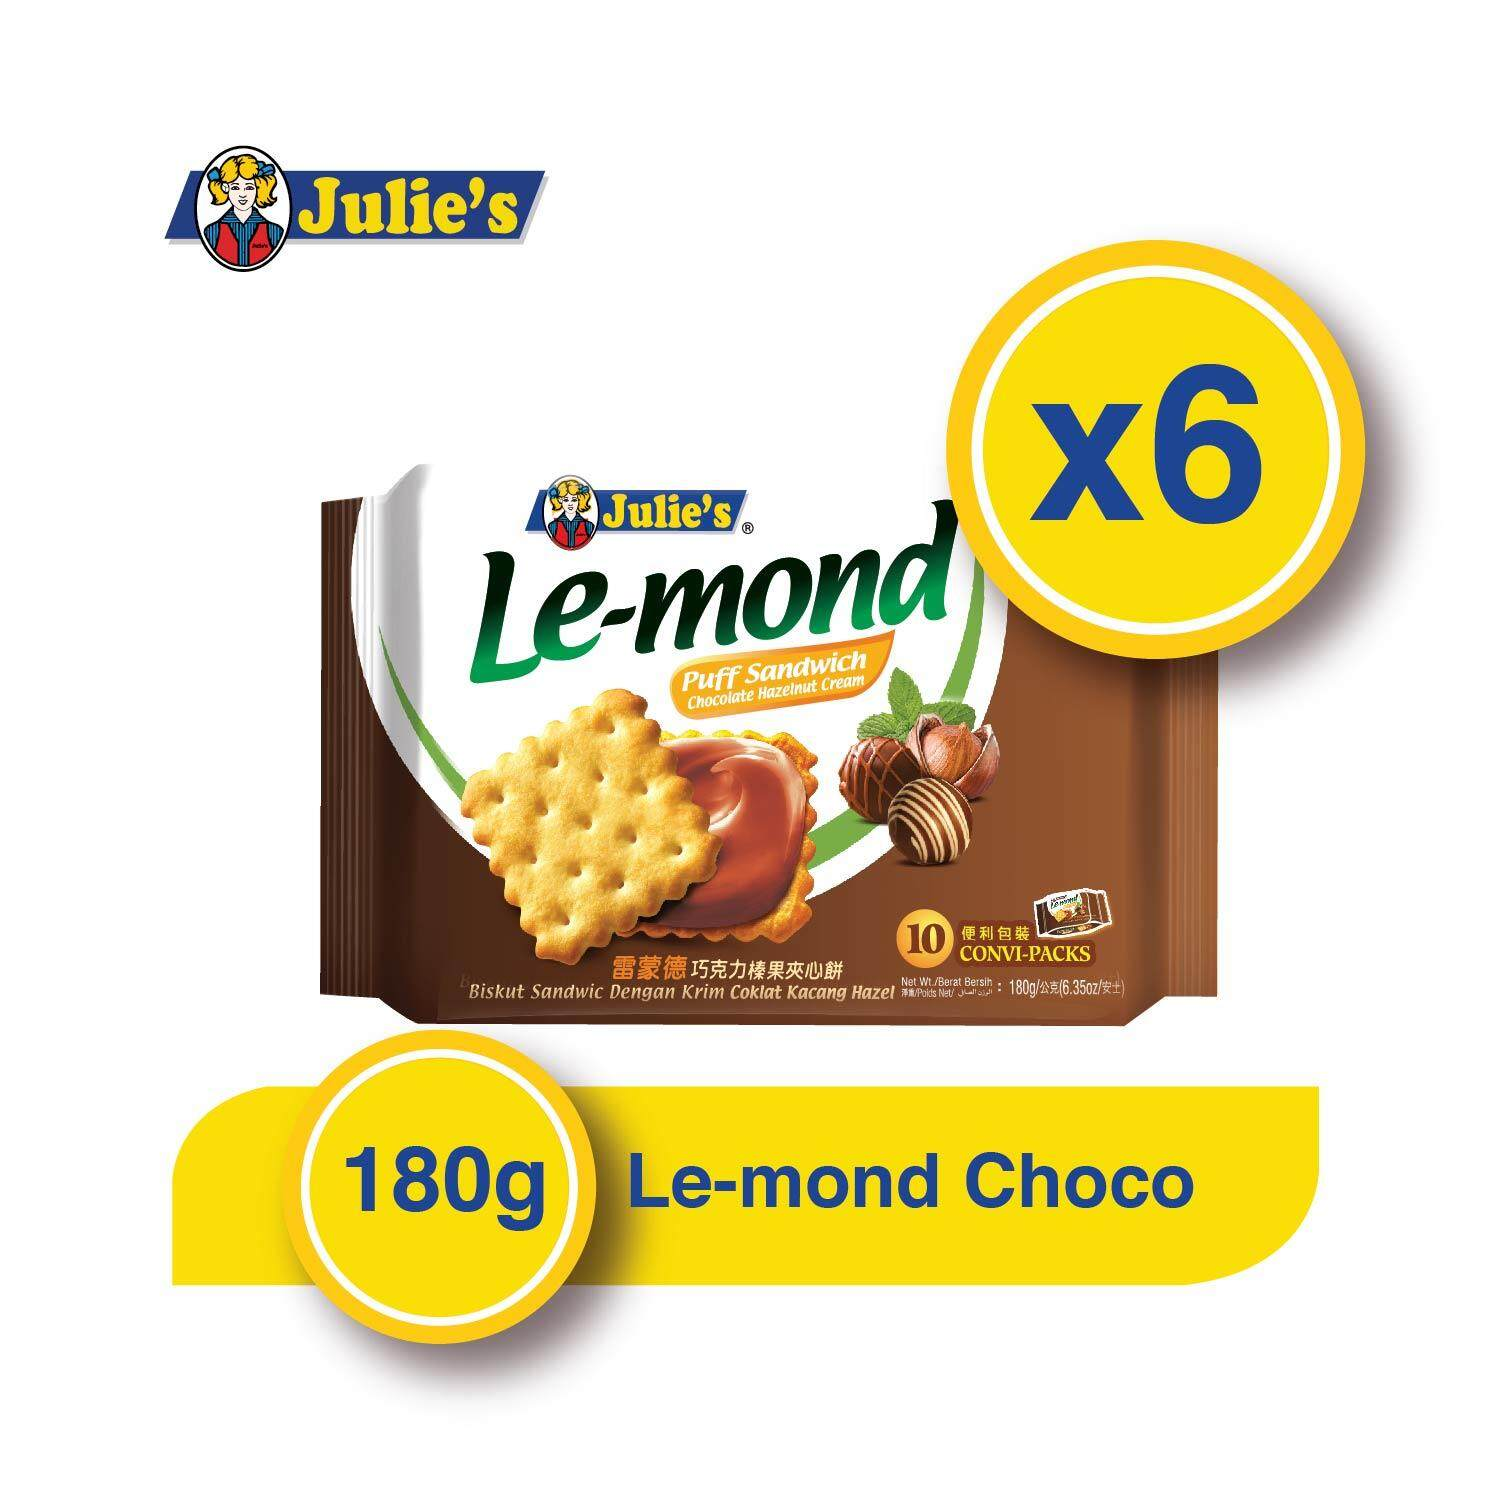 Julie's Le-mond Chocolate Sandwich Biscuit 180g x 6 packs